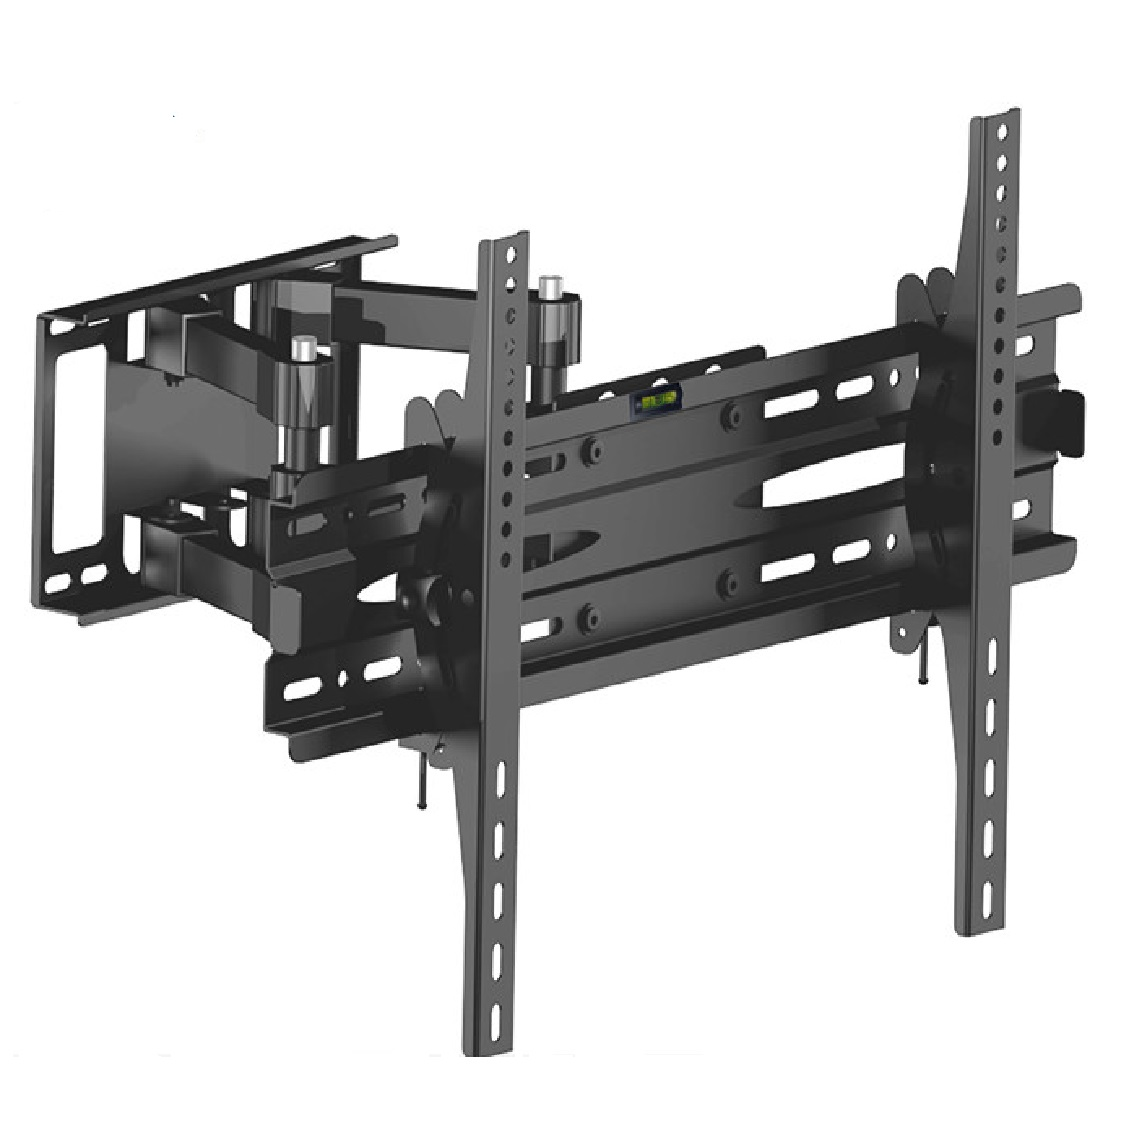 Wmx003 5 Full Motion Sturdy Tv Mount For Tv Up To 47